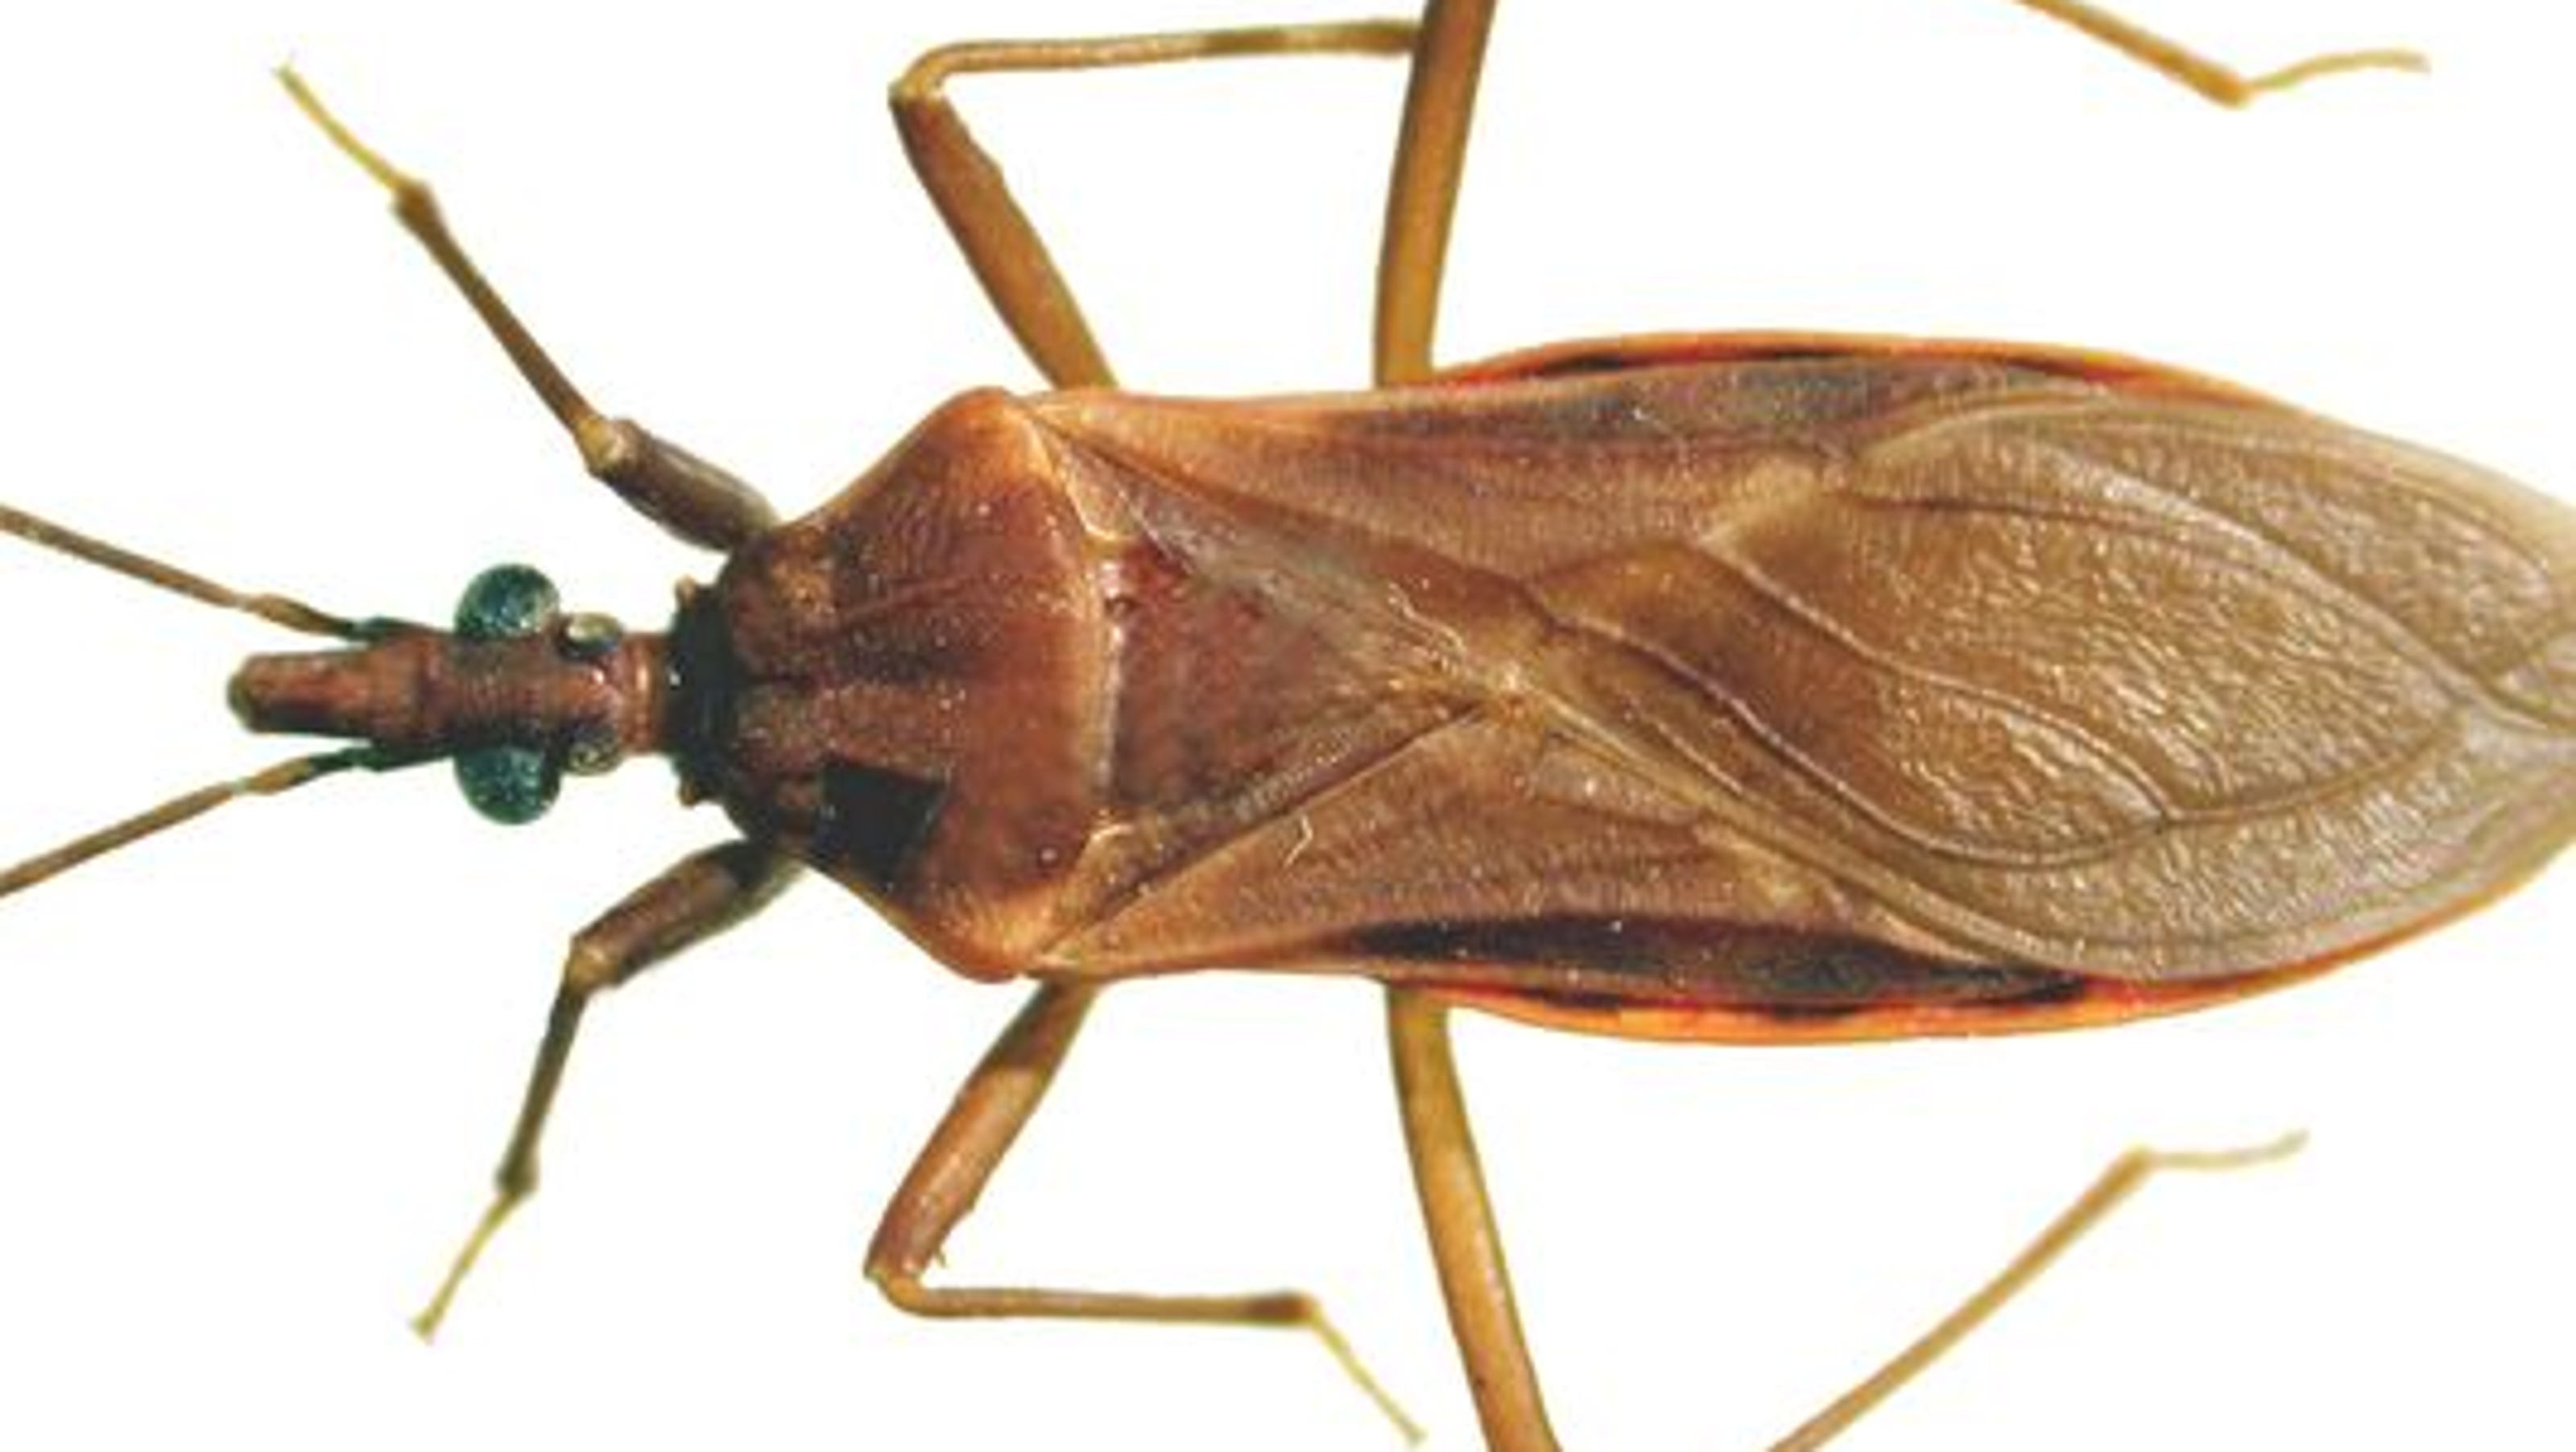 What is Chagas disease (spread by 'kissing bugs')?